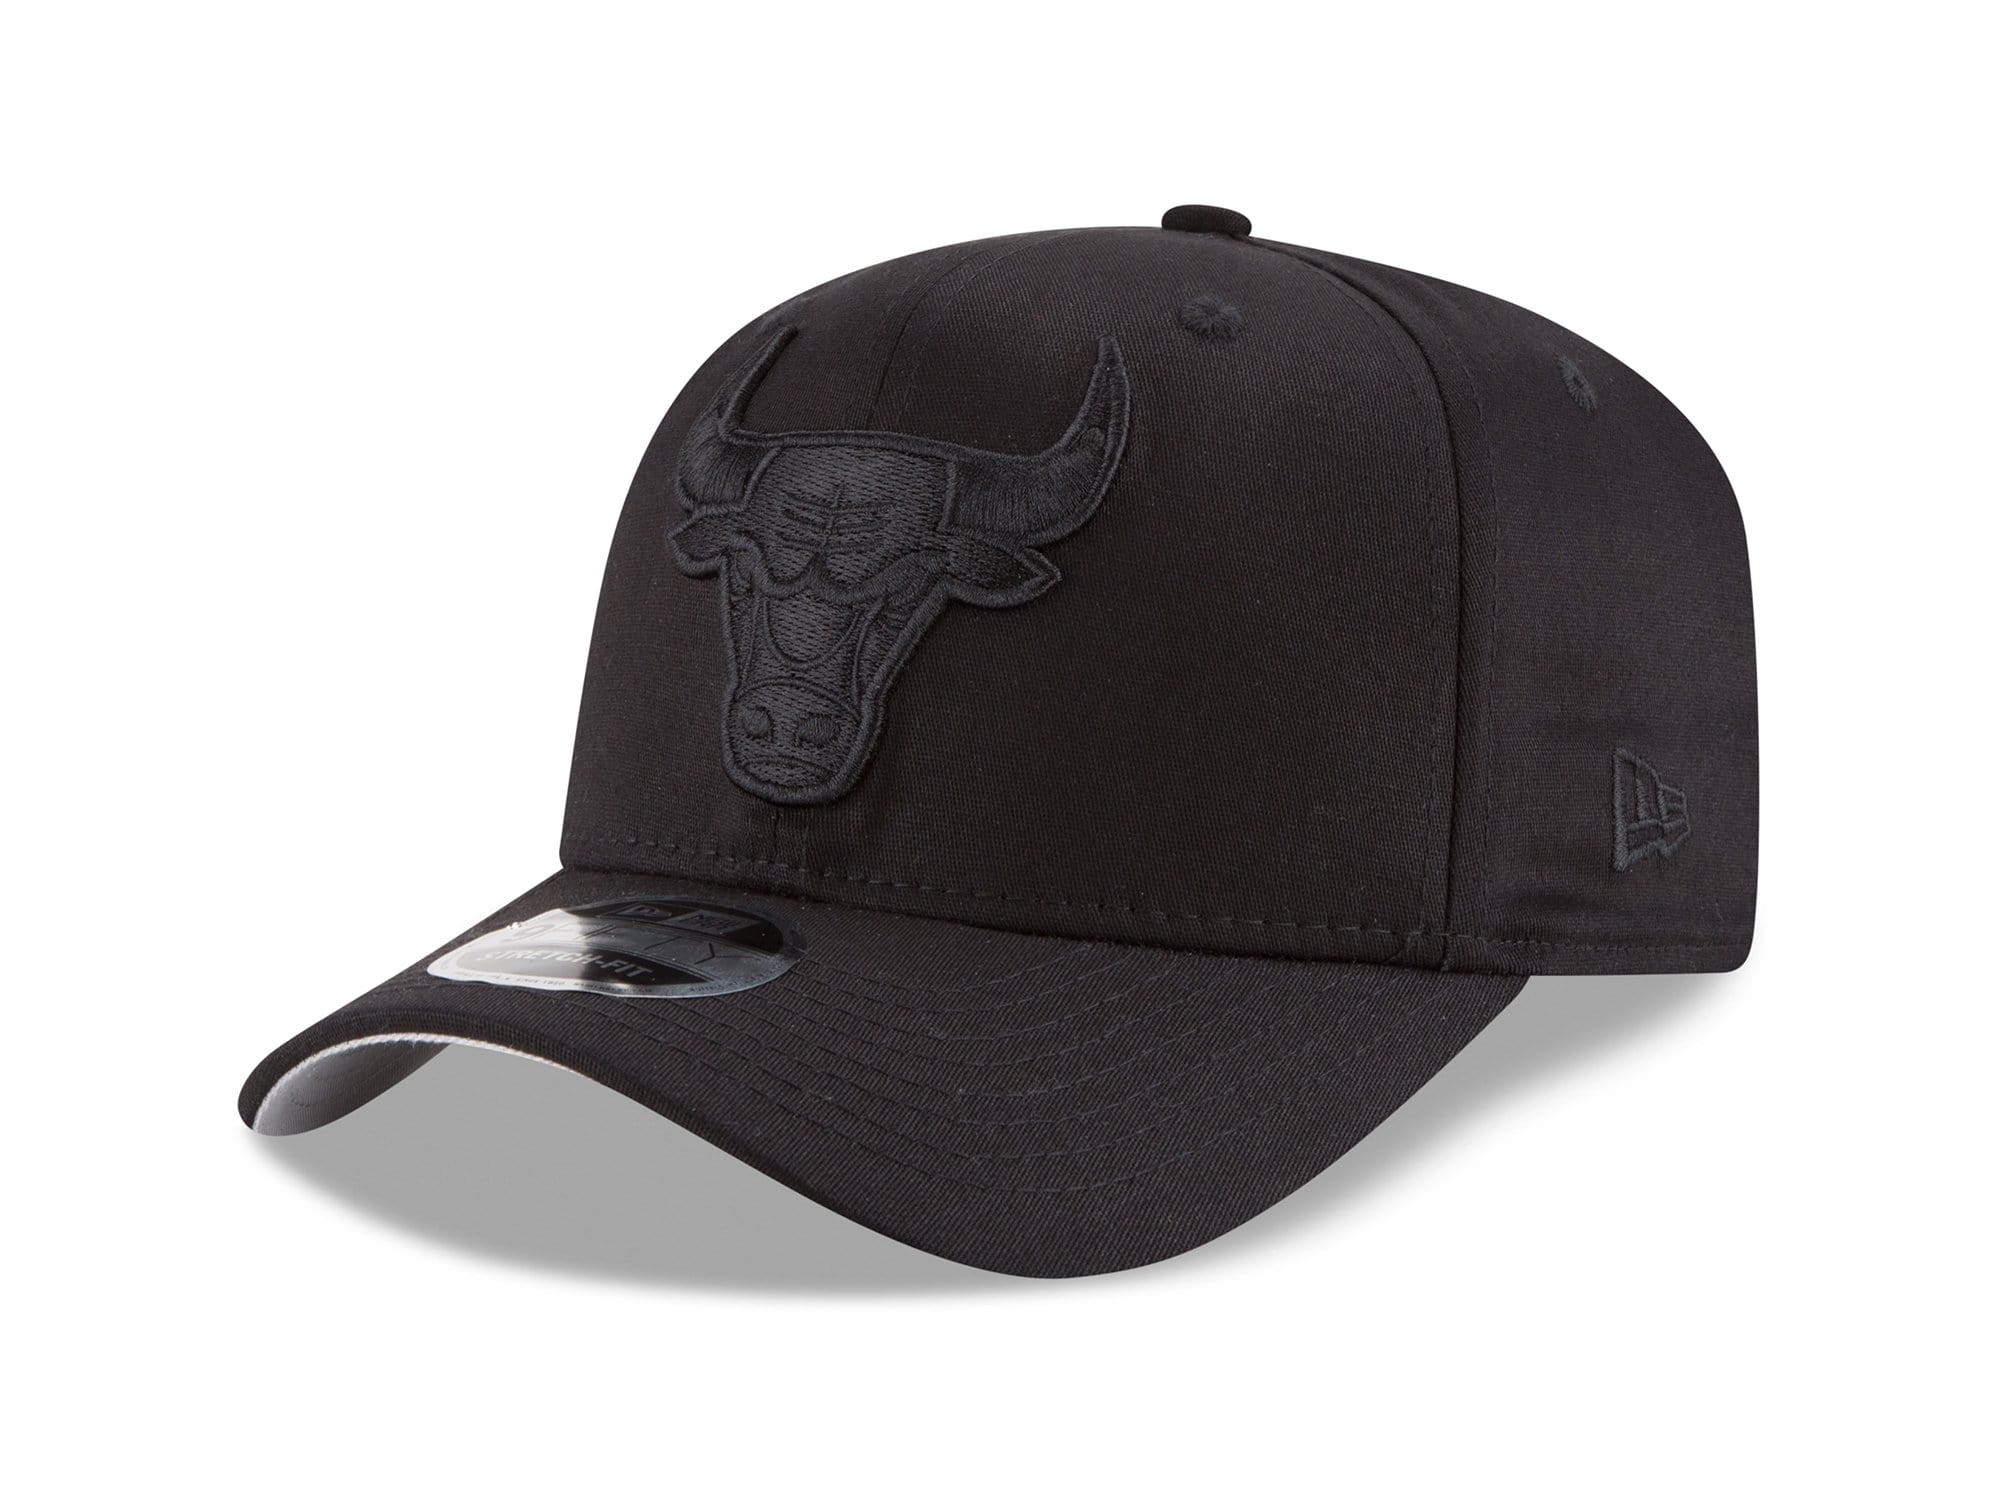 Jockey Nba 950 Stretch Chicago Bulls Unisex Negro